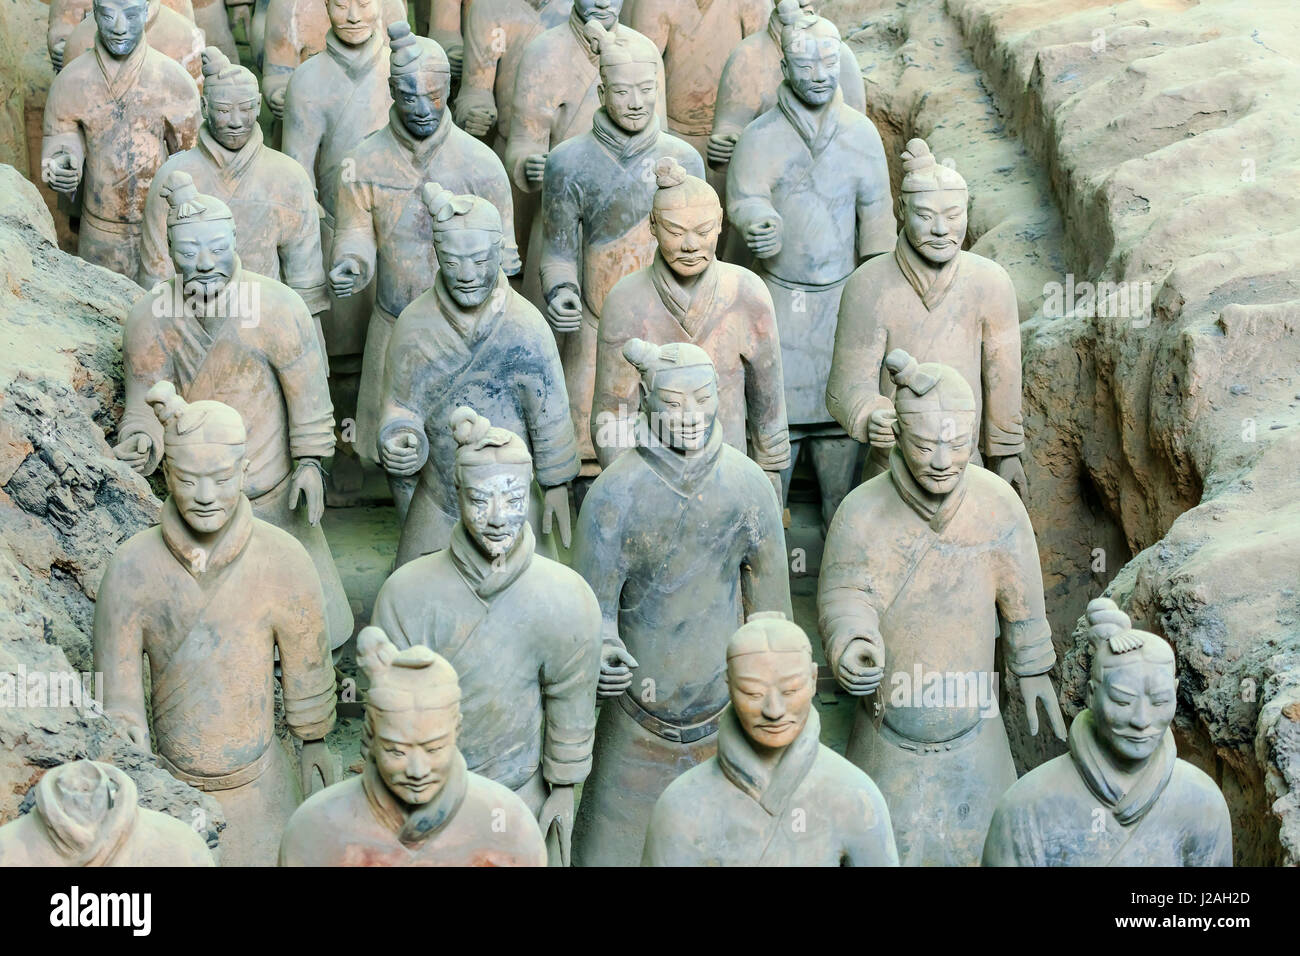 terracotta army fake paper